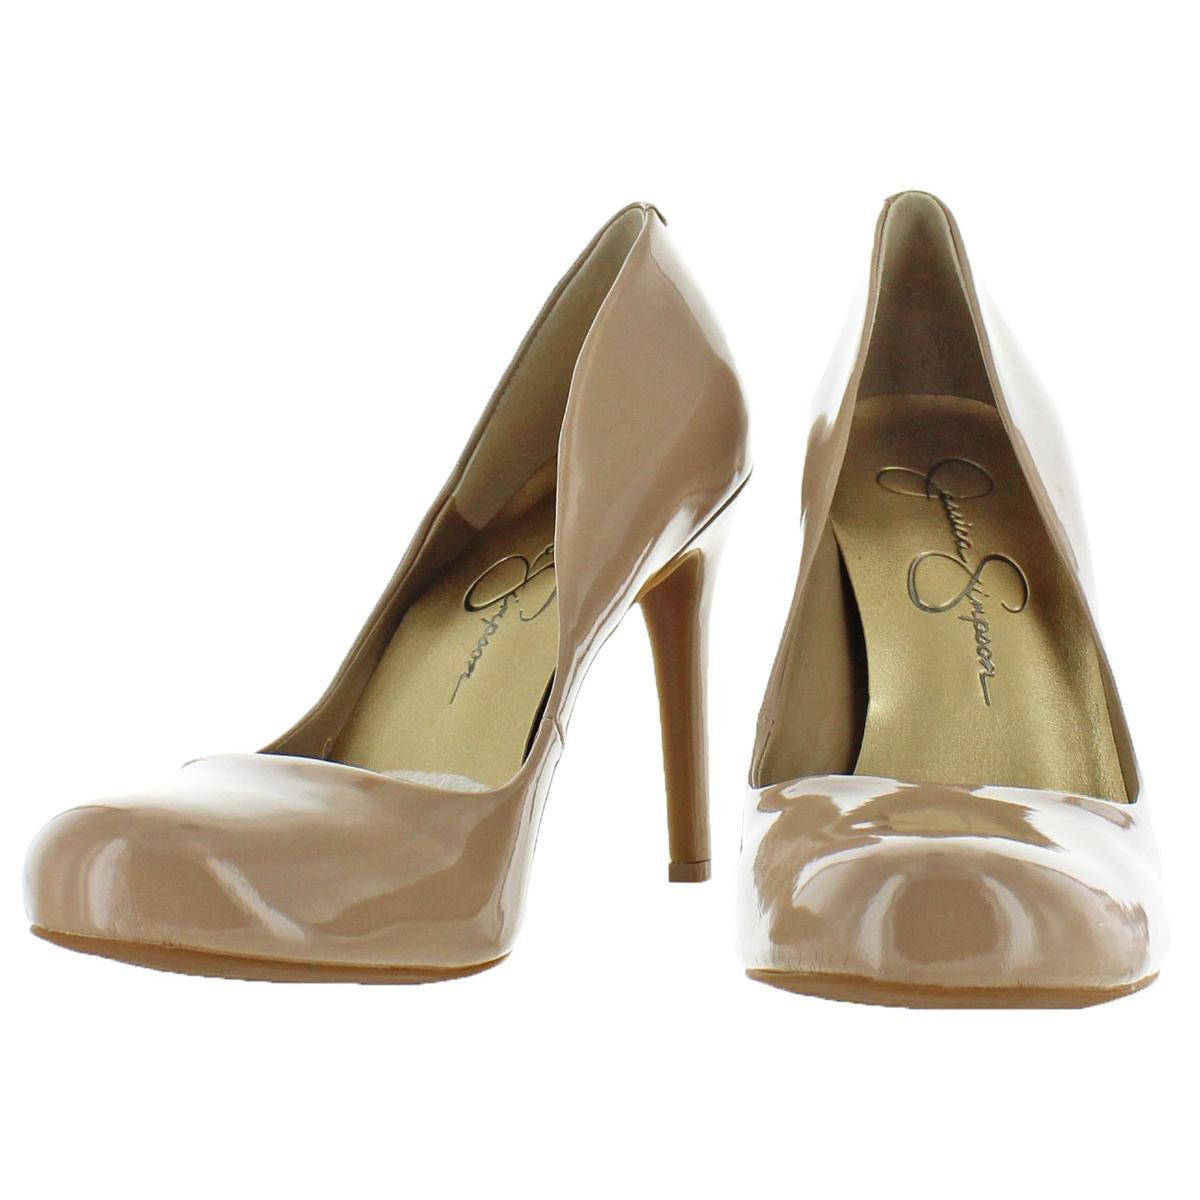 Jessica-Simpson-Women-039-s-Calie-Round-Toe-Classic-Heels-Pumps-Shoes thumbnail 10